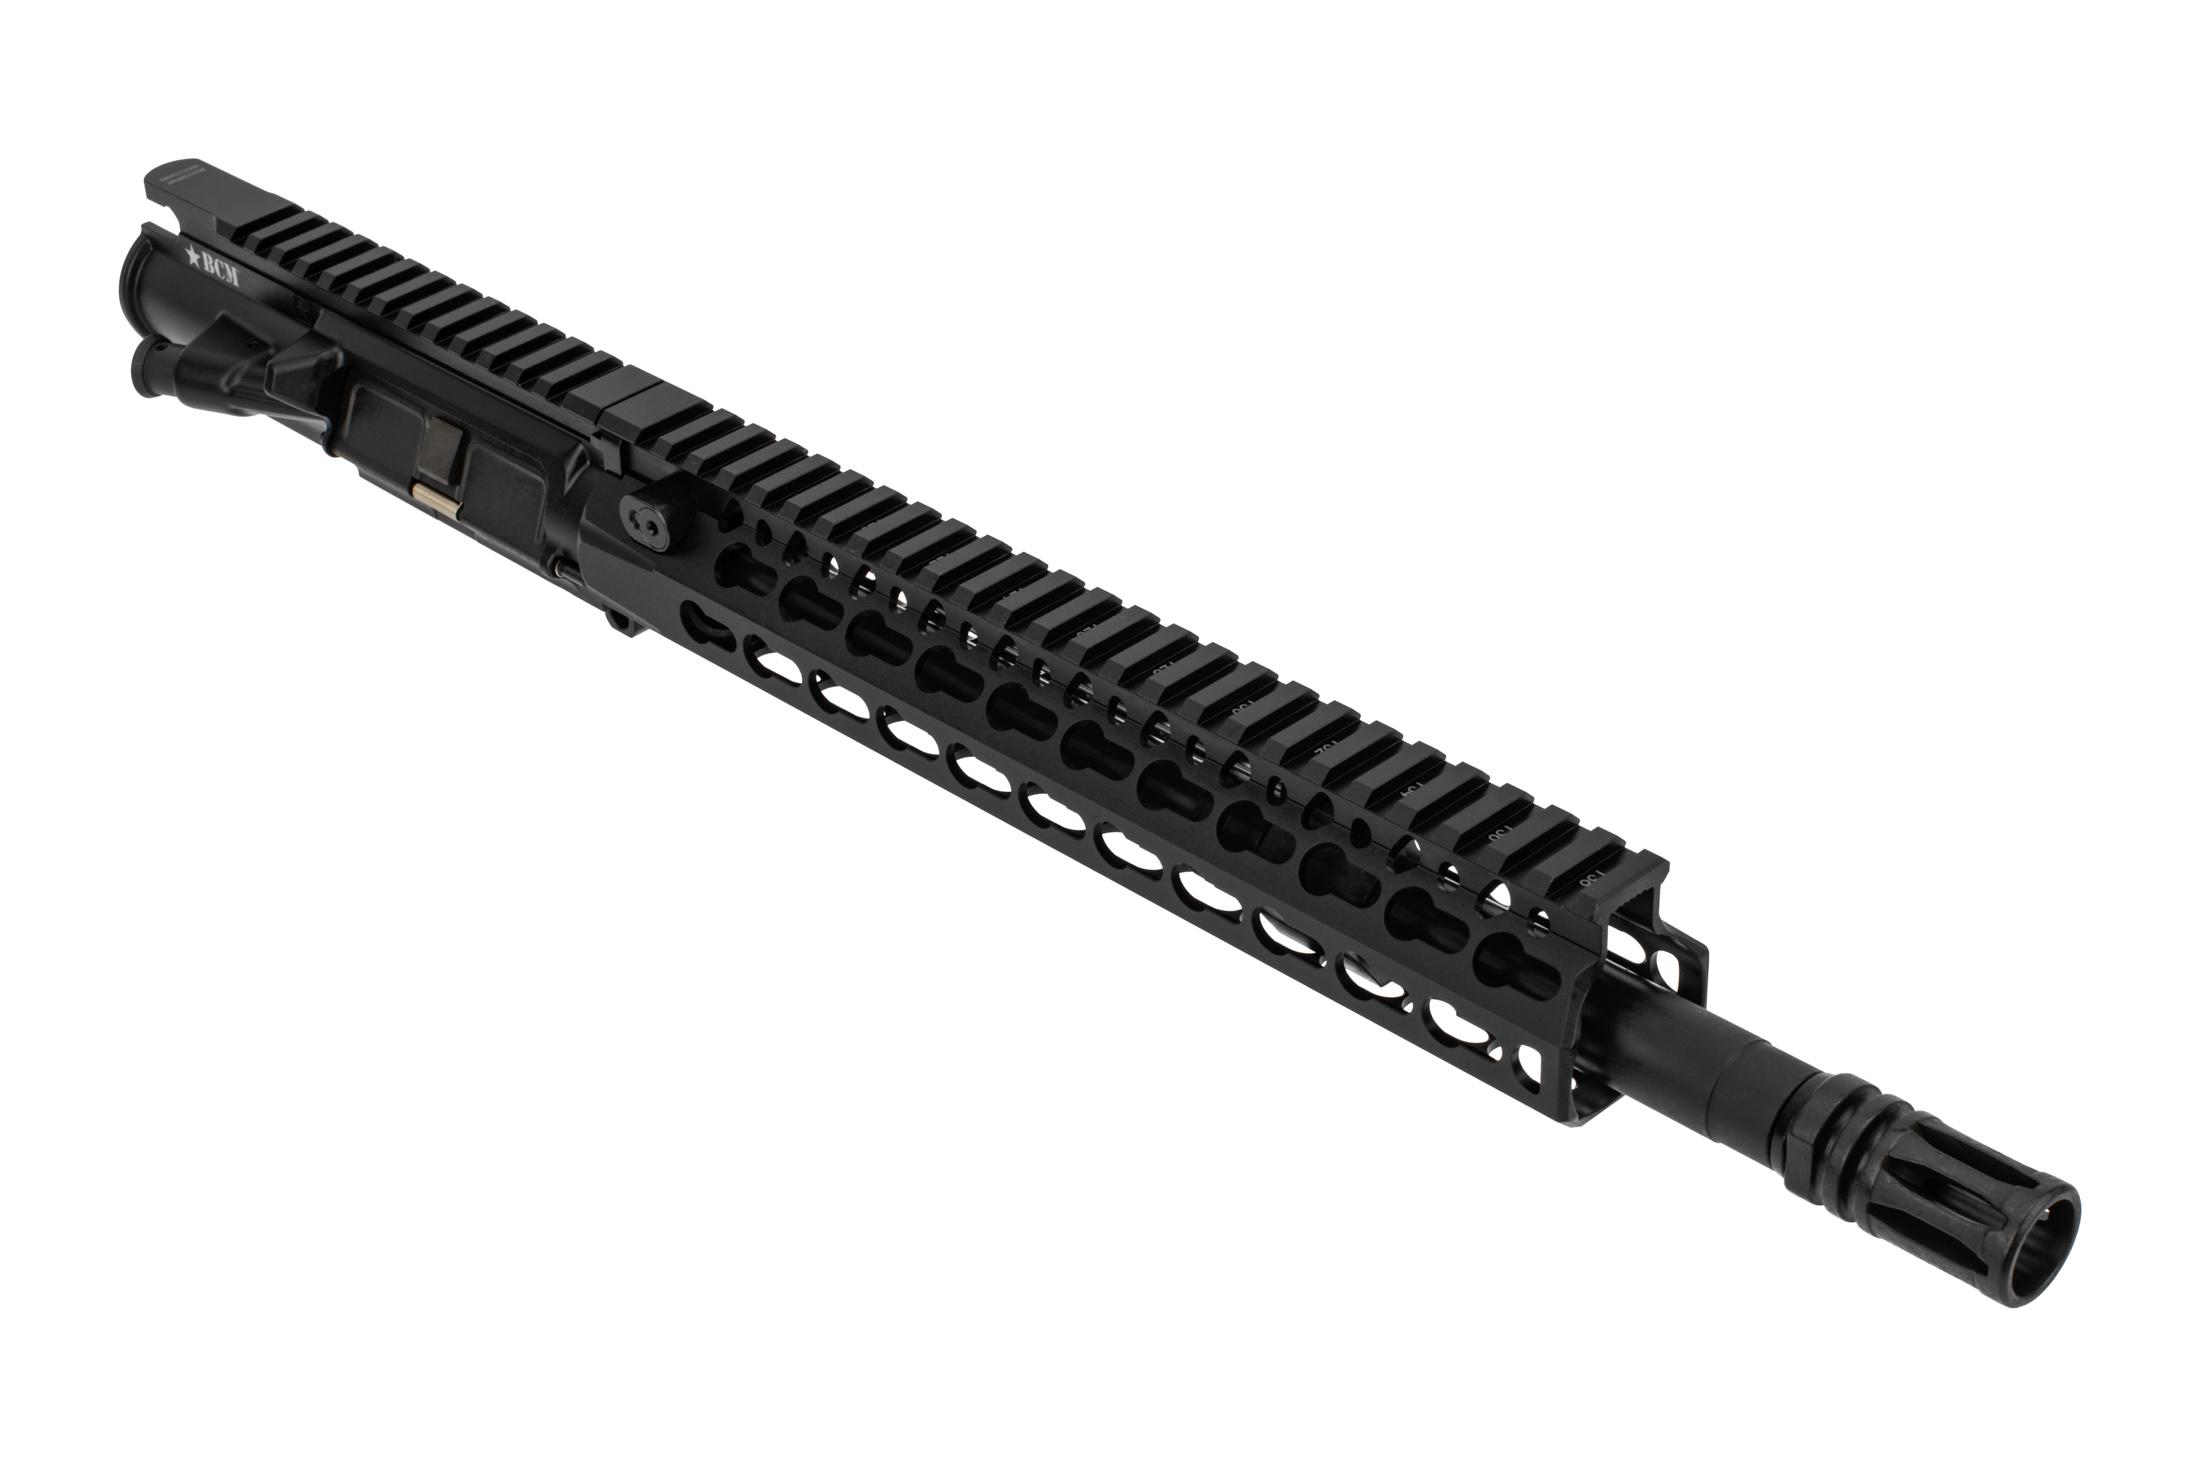 Bravo Company Manufacturing MK2 AR15 barreled upper receiver features a 12.5 inch barrel and KMR handguard